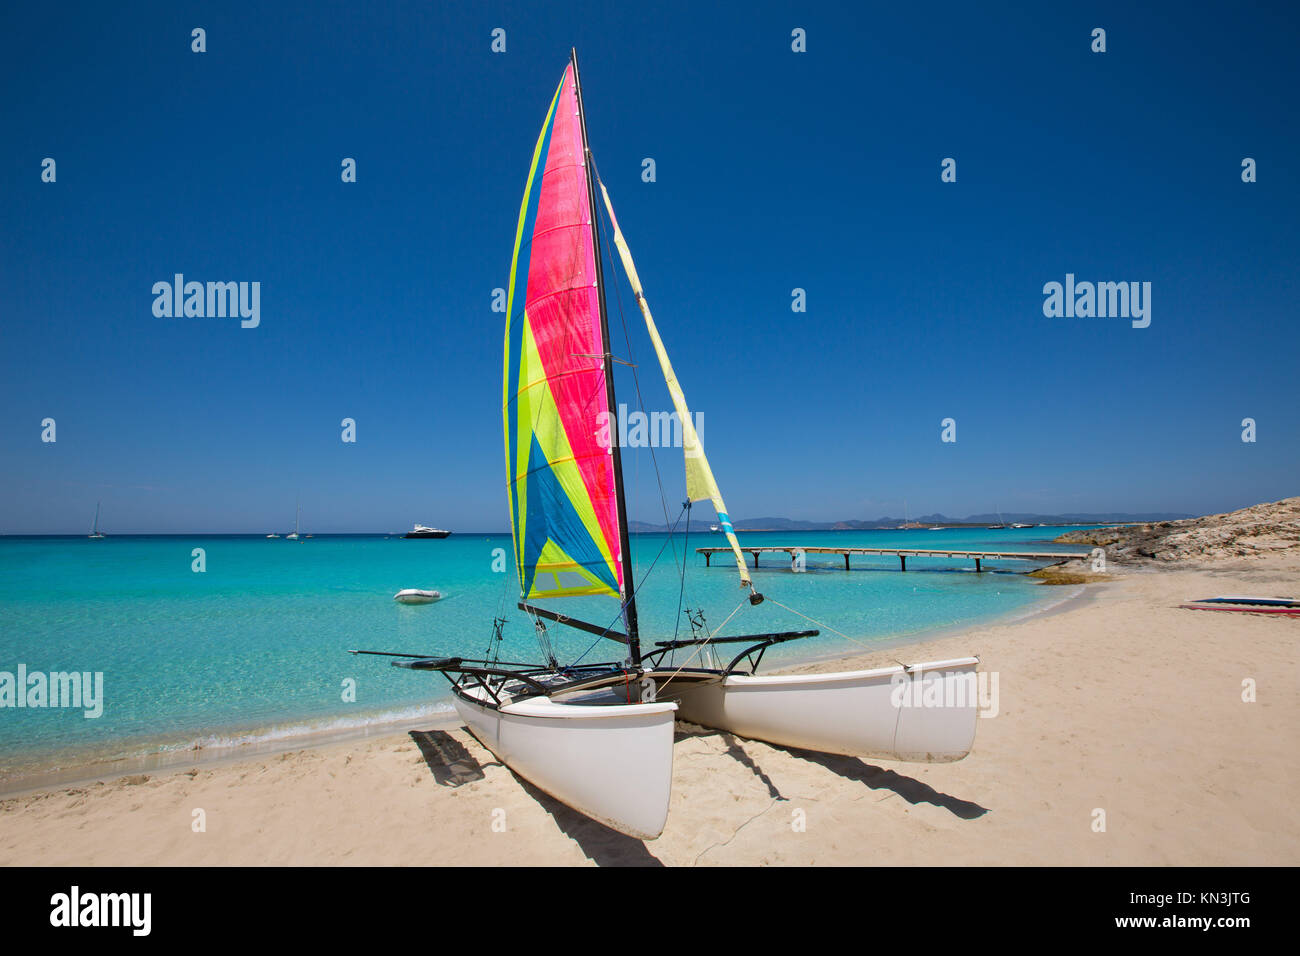 Catamaran sailboat in Illetes beach of Formentera at Balearic Islands. - Stock Image